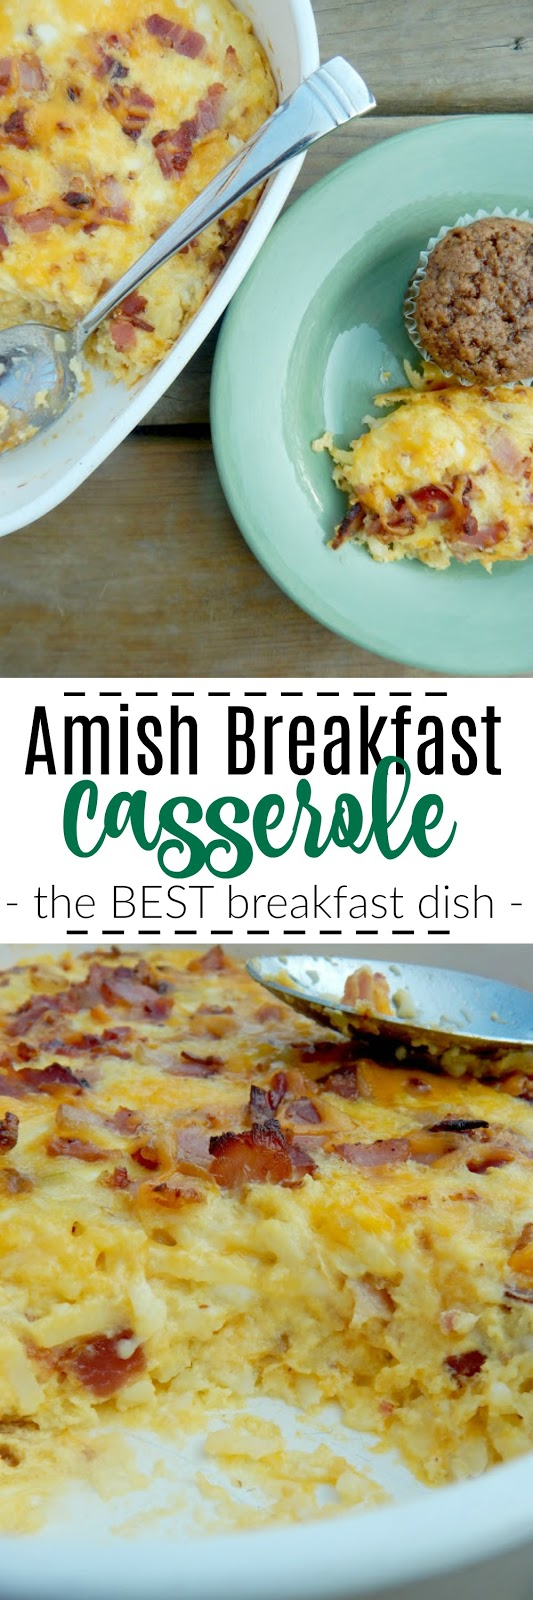 amish breakfast casserole #sweetsavoryeats